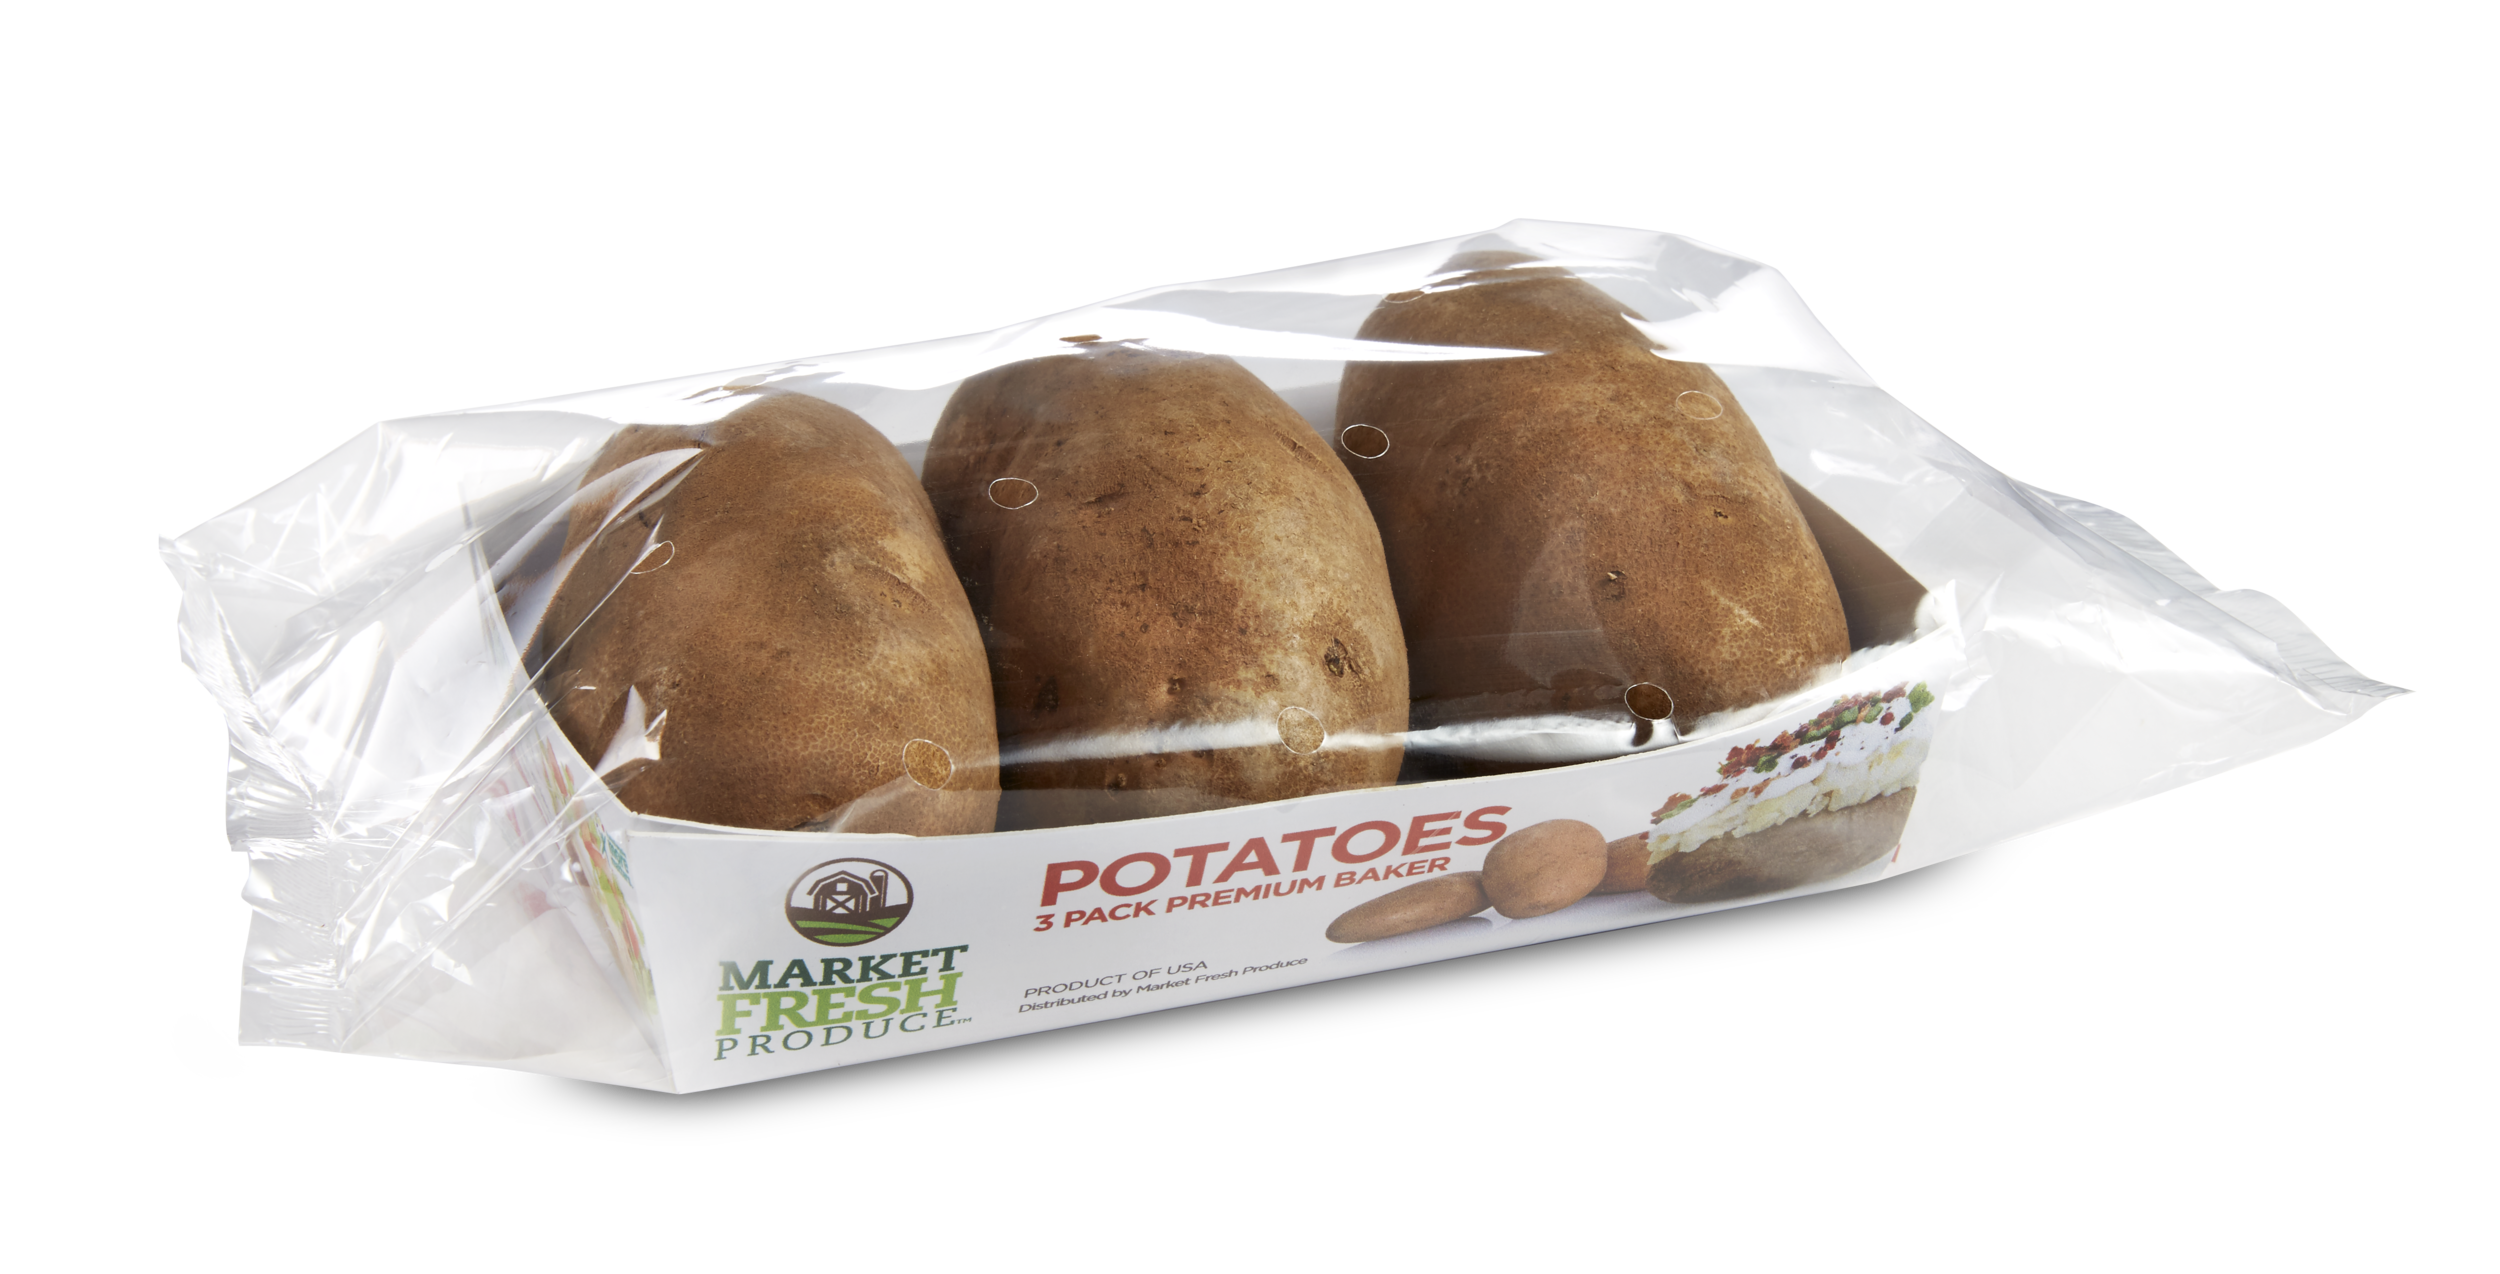 Packaged Baker Potatoes - We offer russet potatoes in several retail ready offerings! Our newest 3 pack baker potato tray or the classic 5 and 10 pound bags to the single steamer potato, we have what you need!